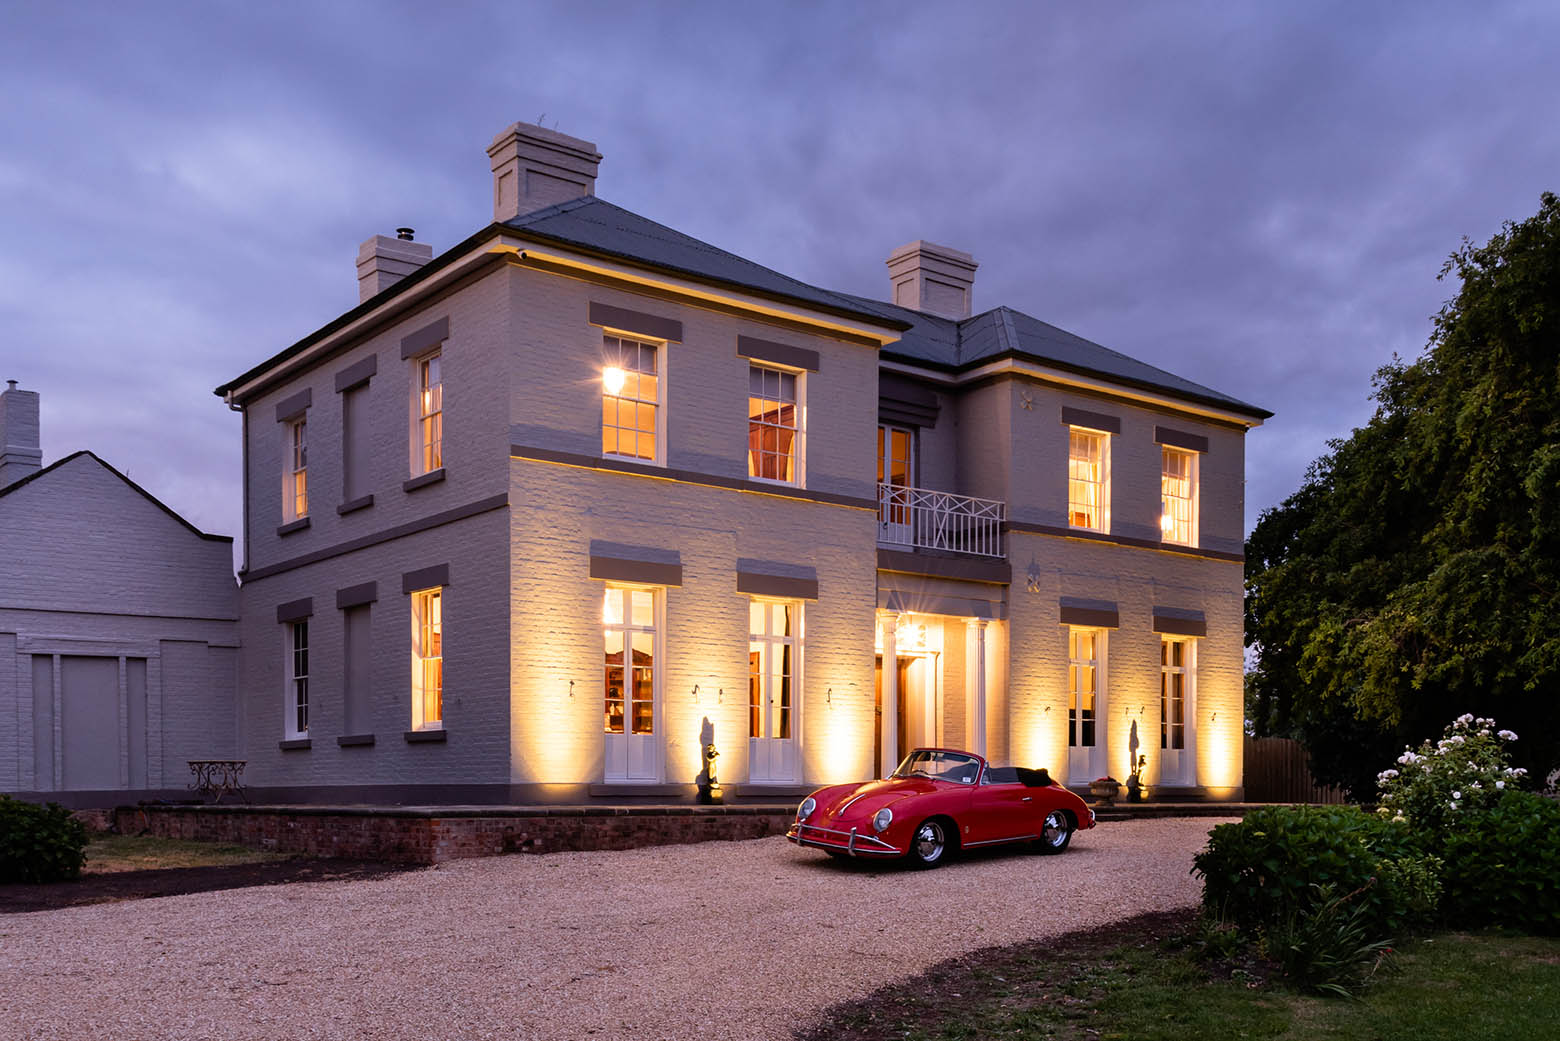 Prospect House Private Hotel is the best Richmond Tasmania accommodation for your Lap of Tasmania road trip